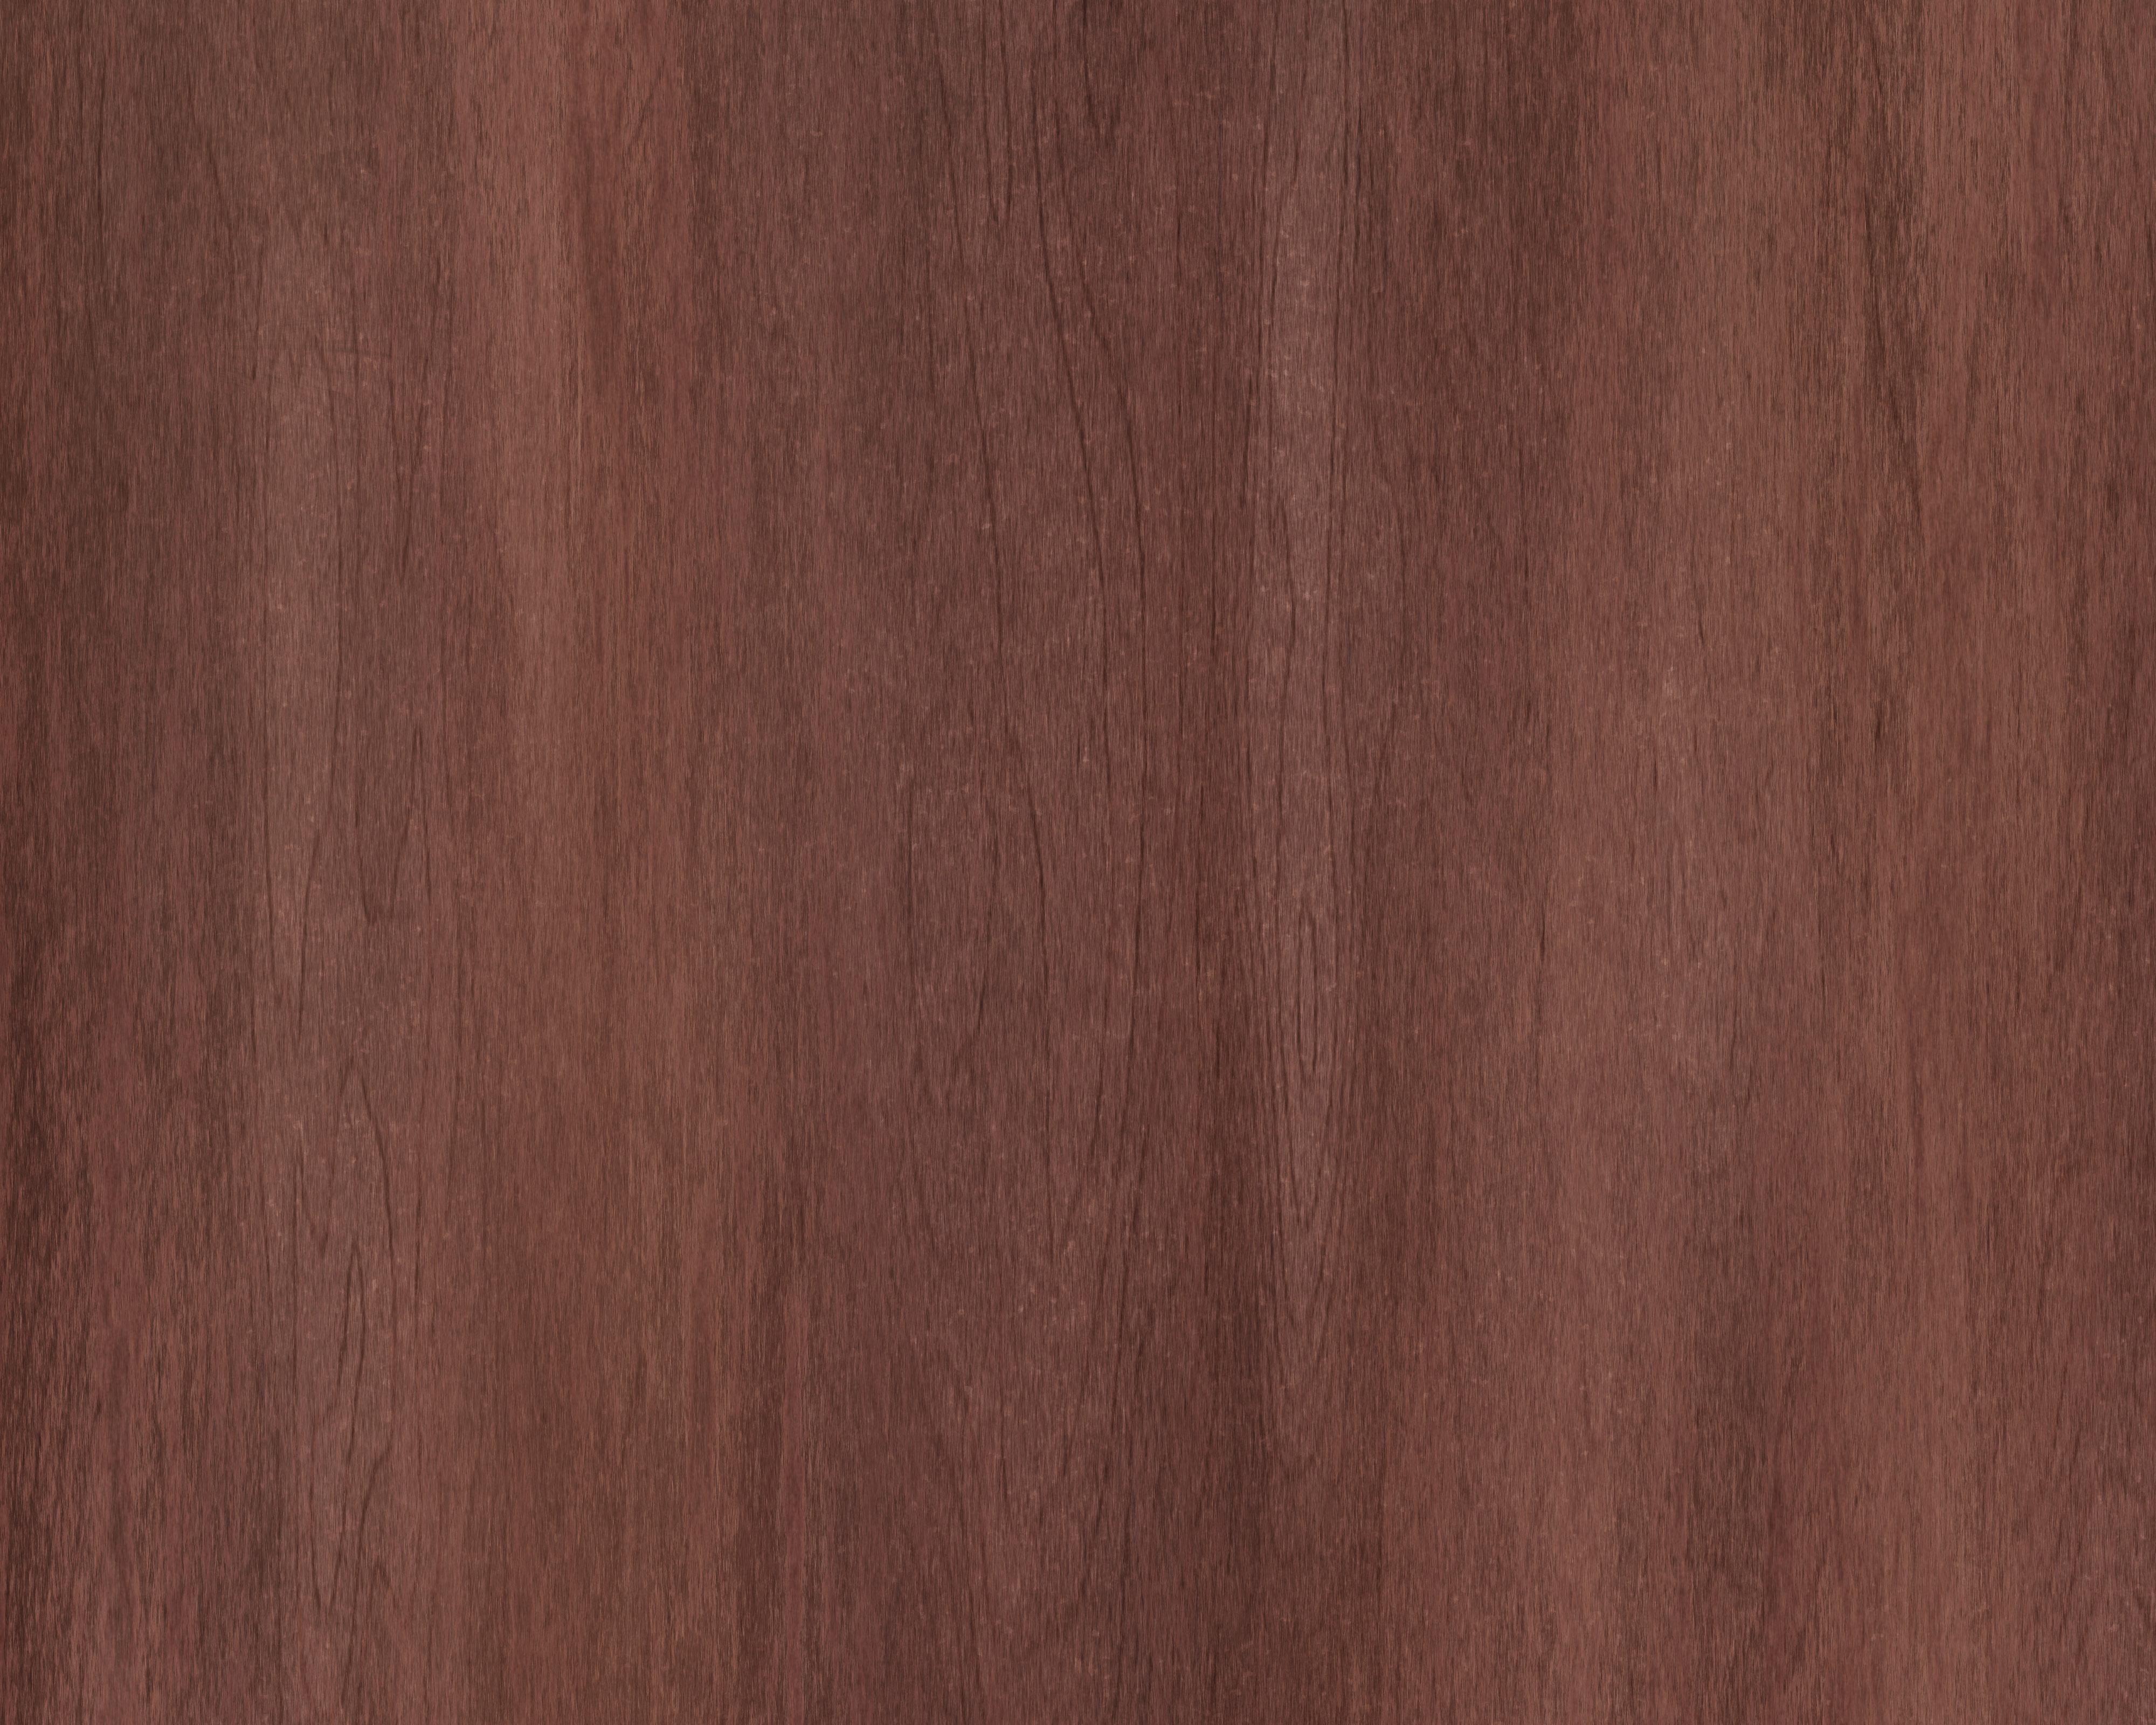 Brown Wooden Pattern Psdgraphics